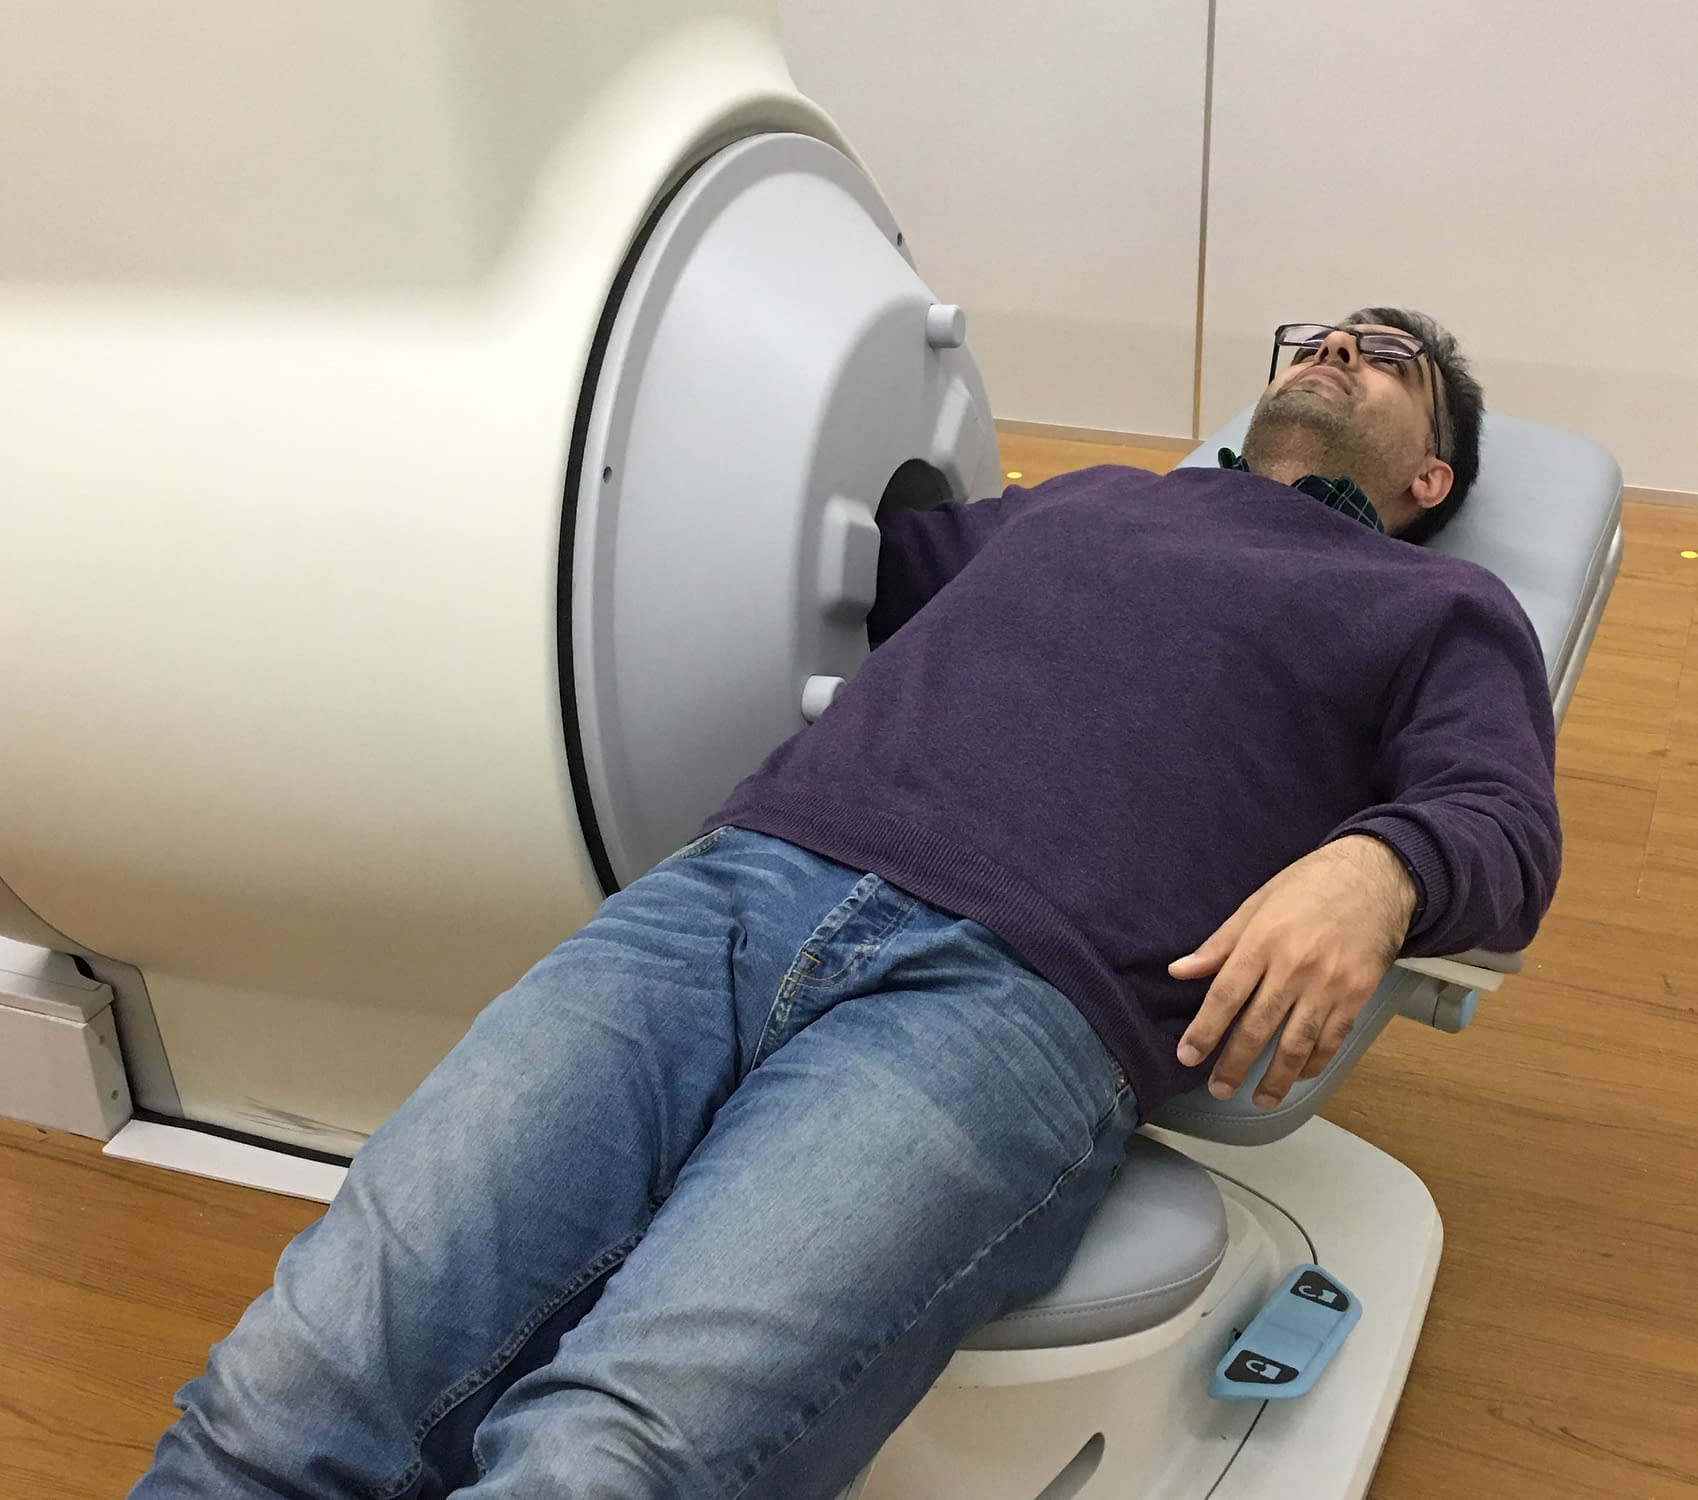 Compact MRI Systems for extremities - The patient getting an MRI scan of the arm.